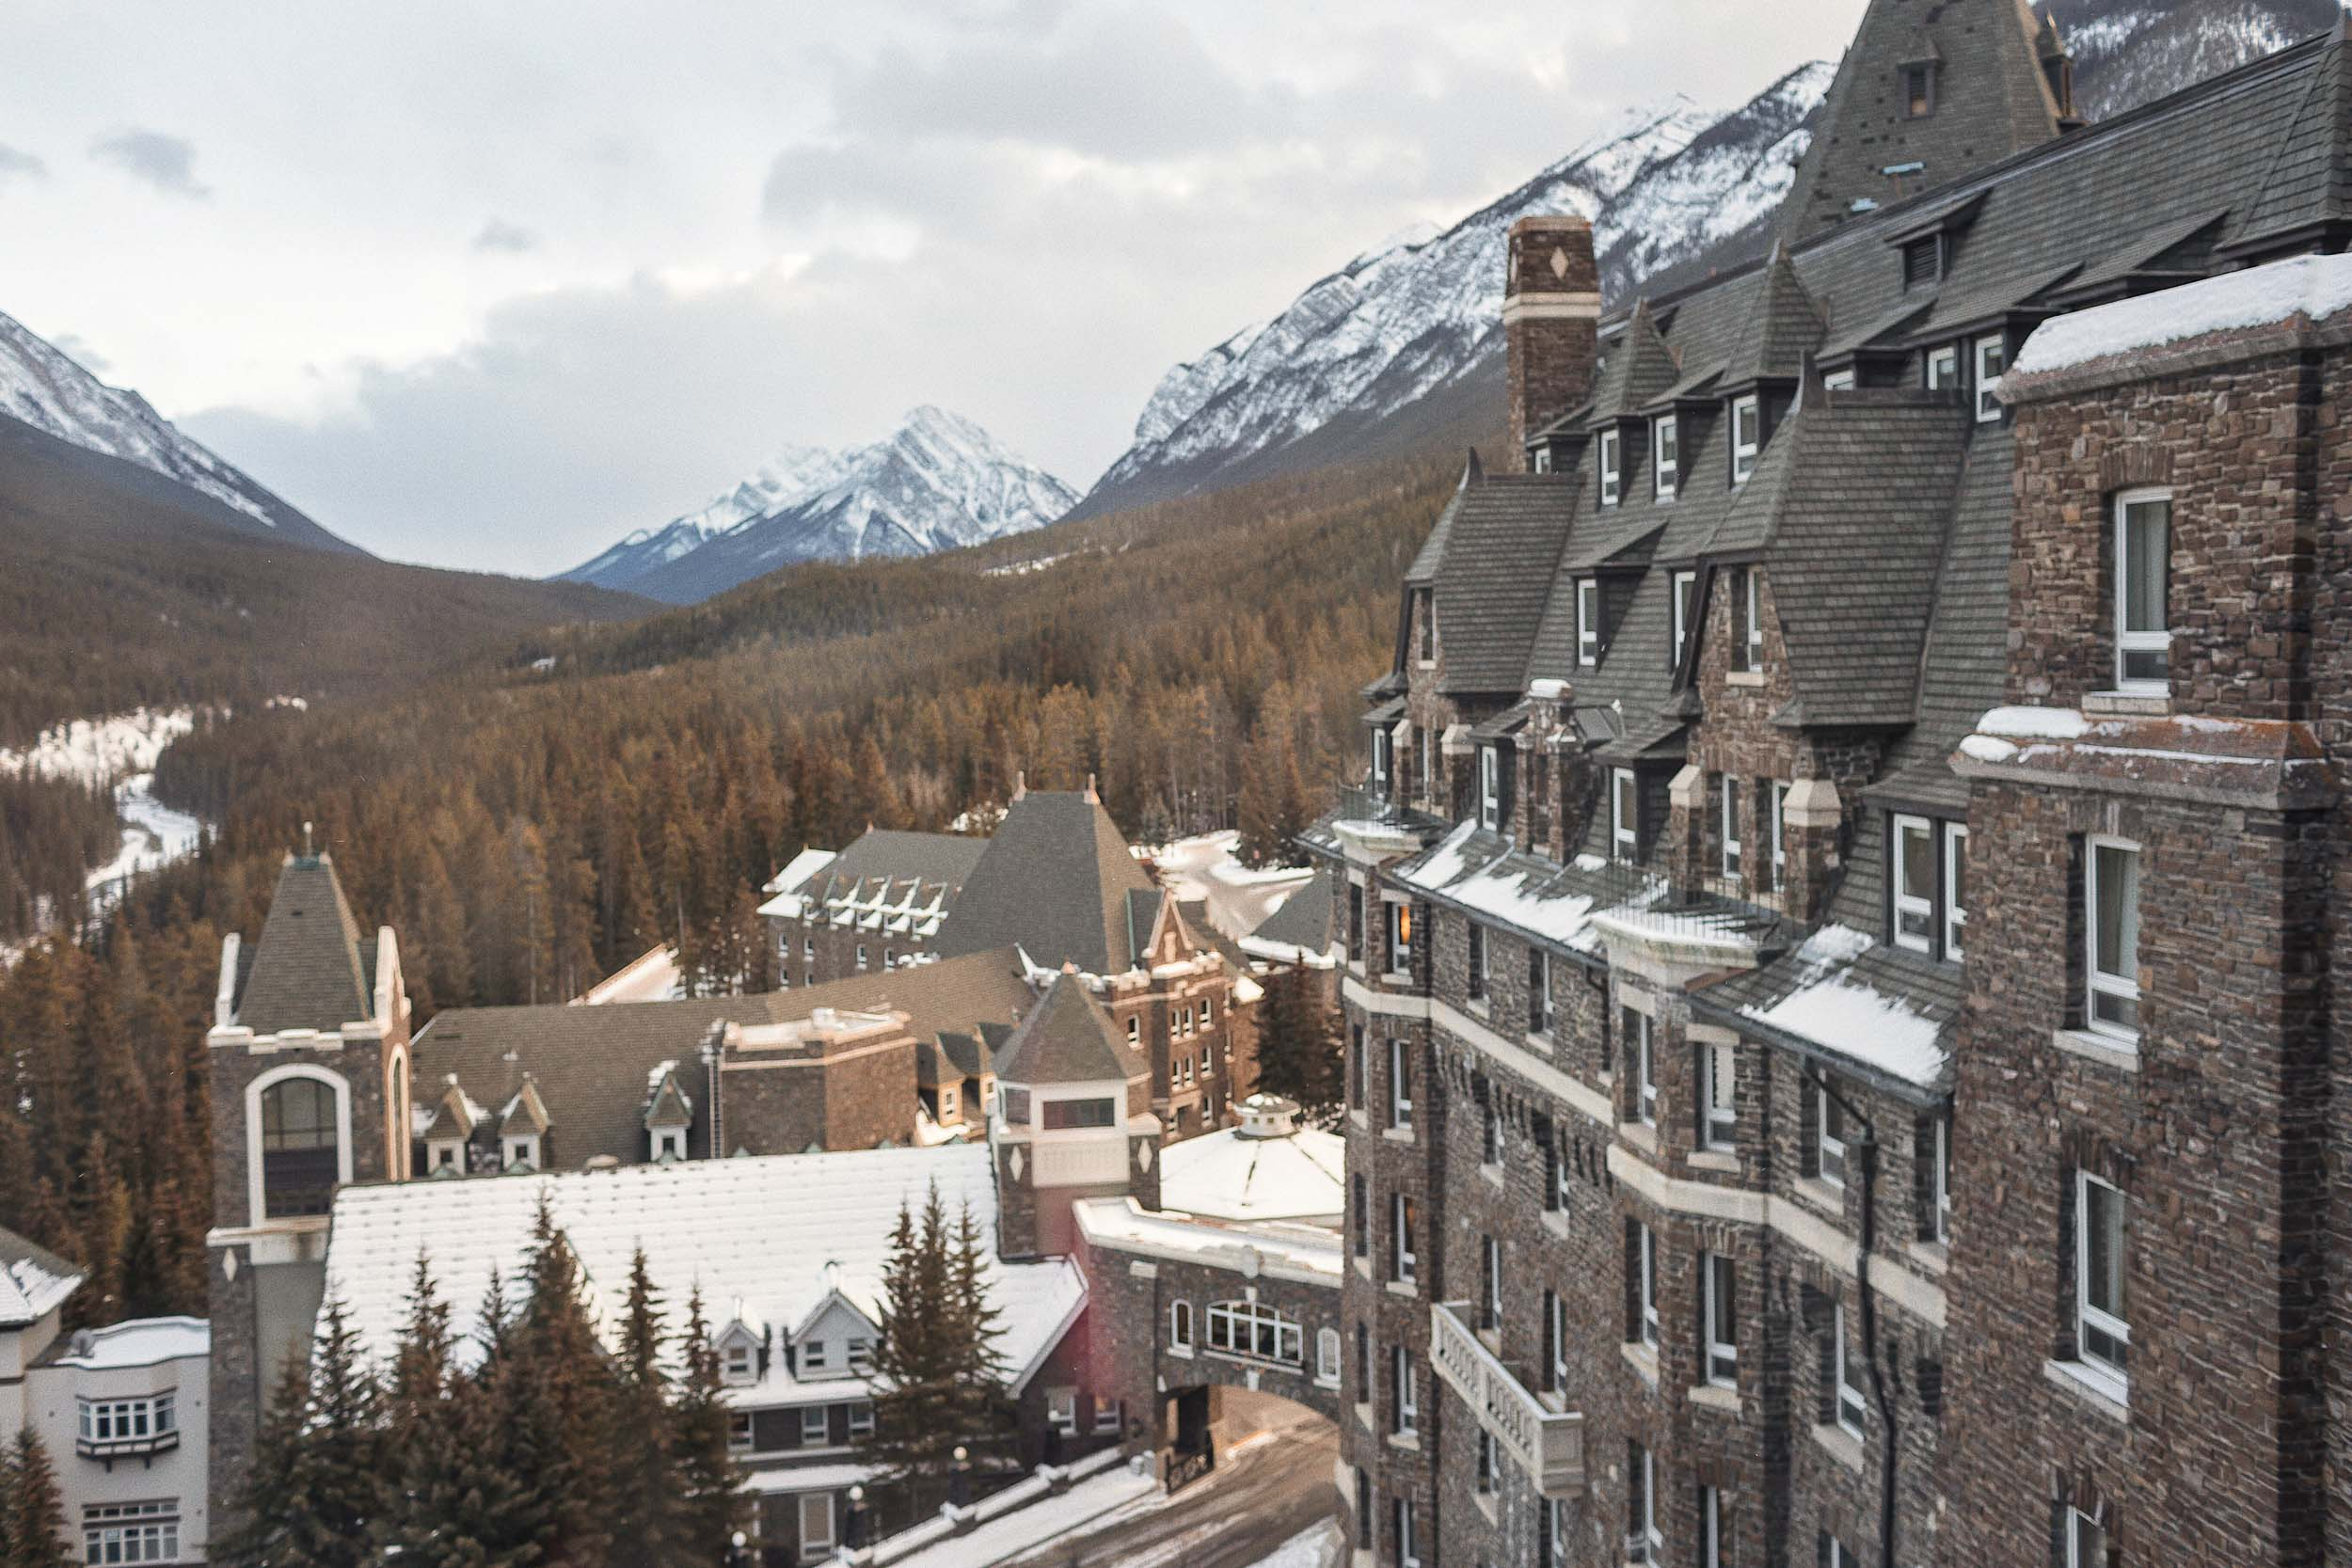 ckanani-banff-winter-a-guide-to-visiting-101.jpg